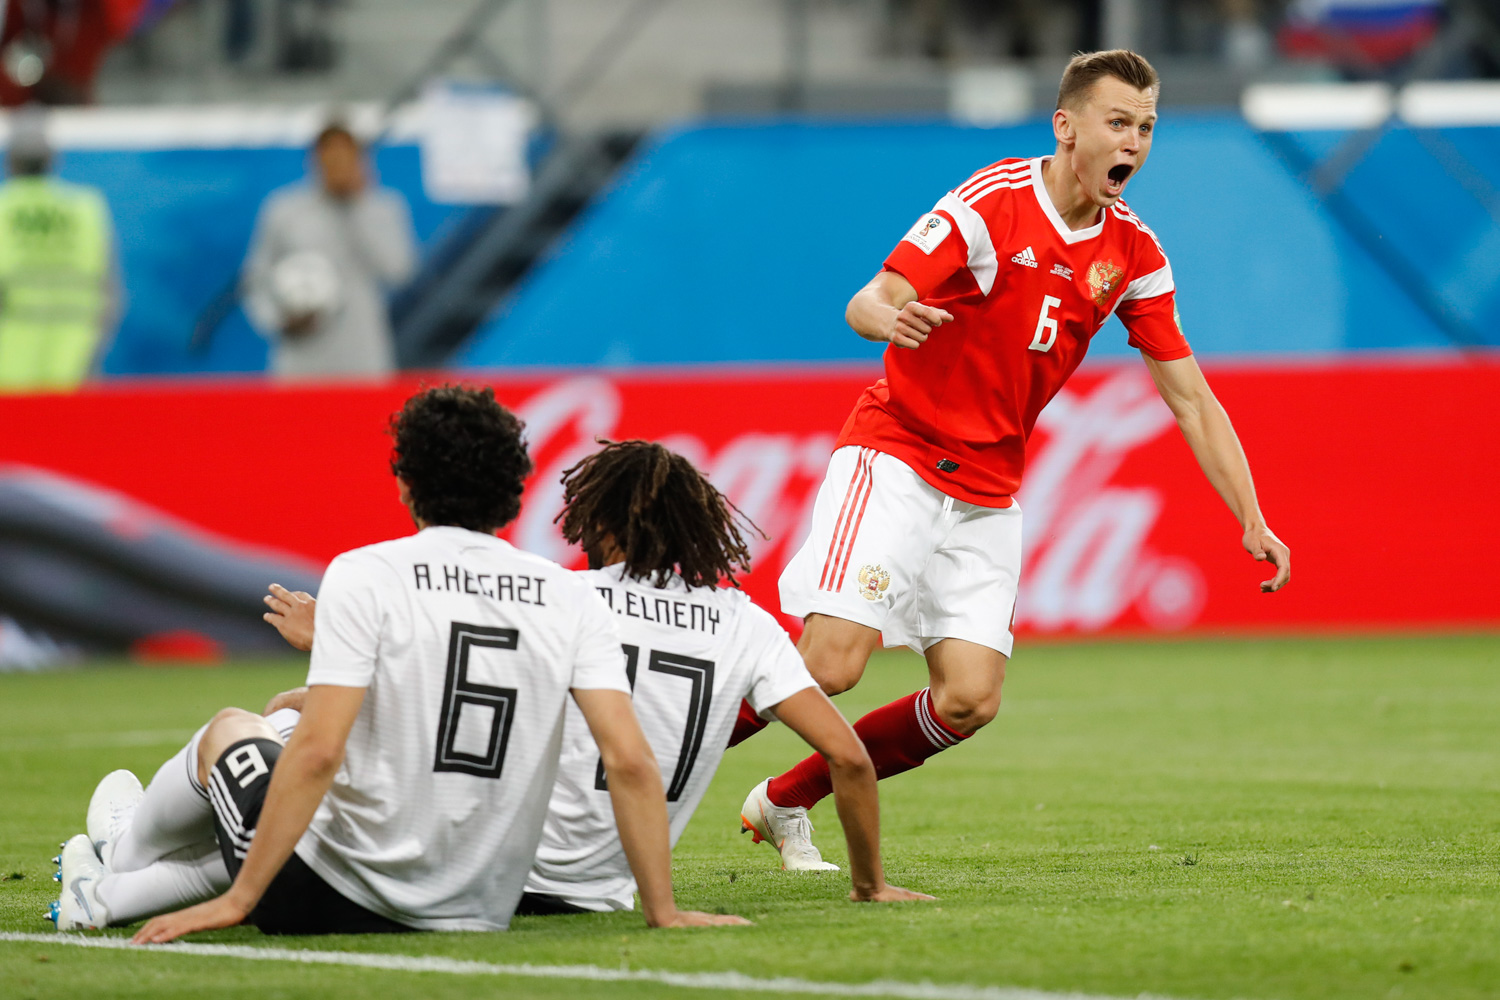 "<div class=""meta image-caption""><div class=""origin-logo origin-image none""><span>none</span></div><span class=""caption-text"">Russia's Denis Cheryshev celebrates after scoring his team second goal during the group A match between Russia and Egypt at the 2018 soccer World Cup in the St. Petersburg stadium (Efrem Lukatsky/AP)</span></div>"